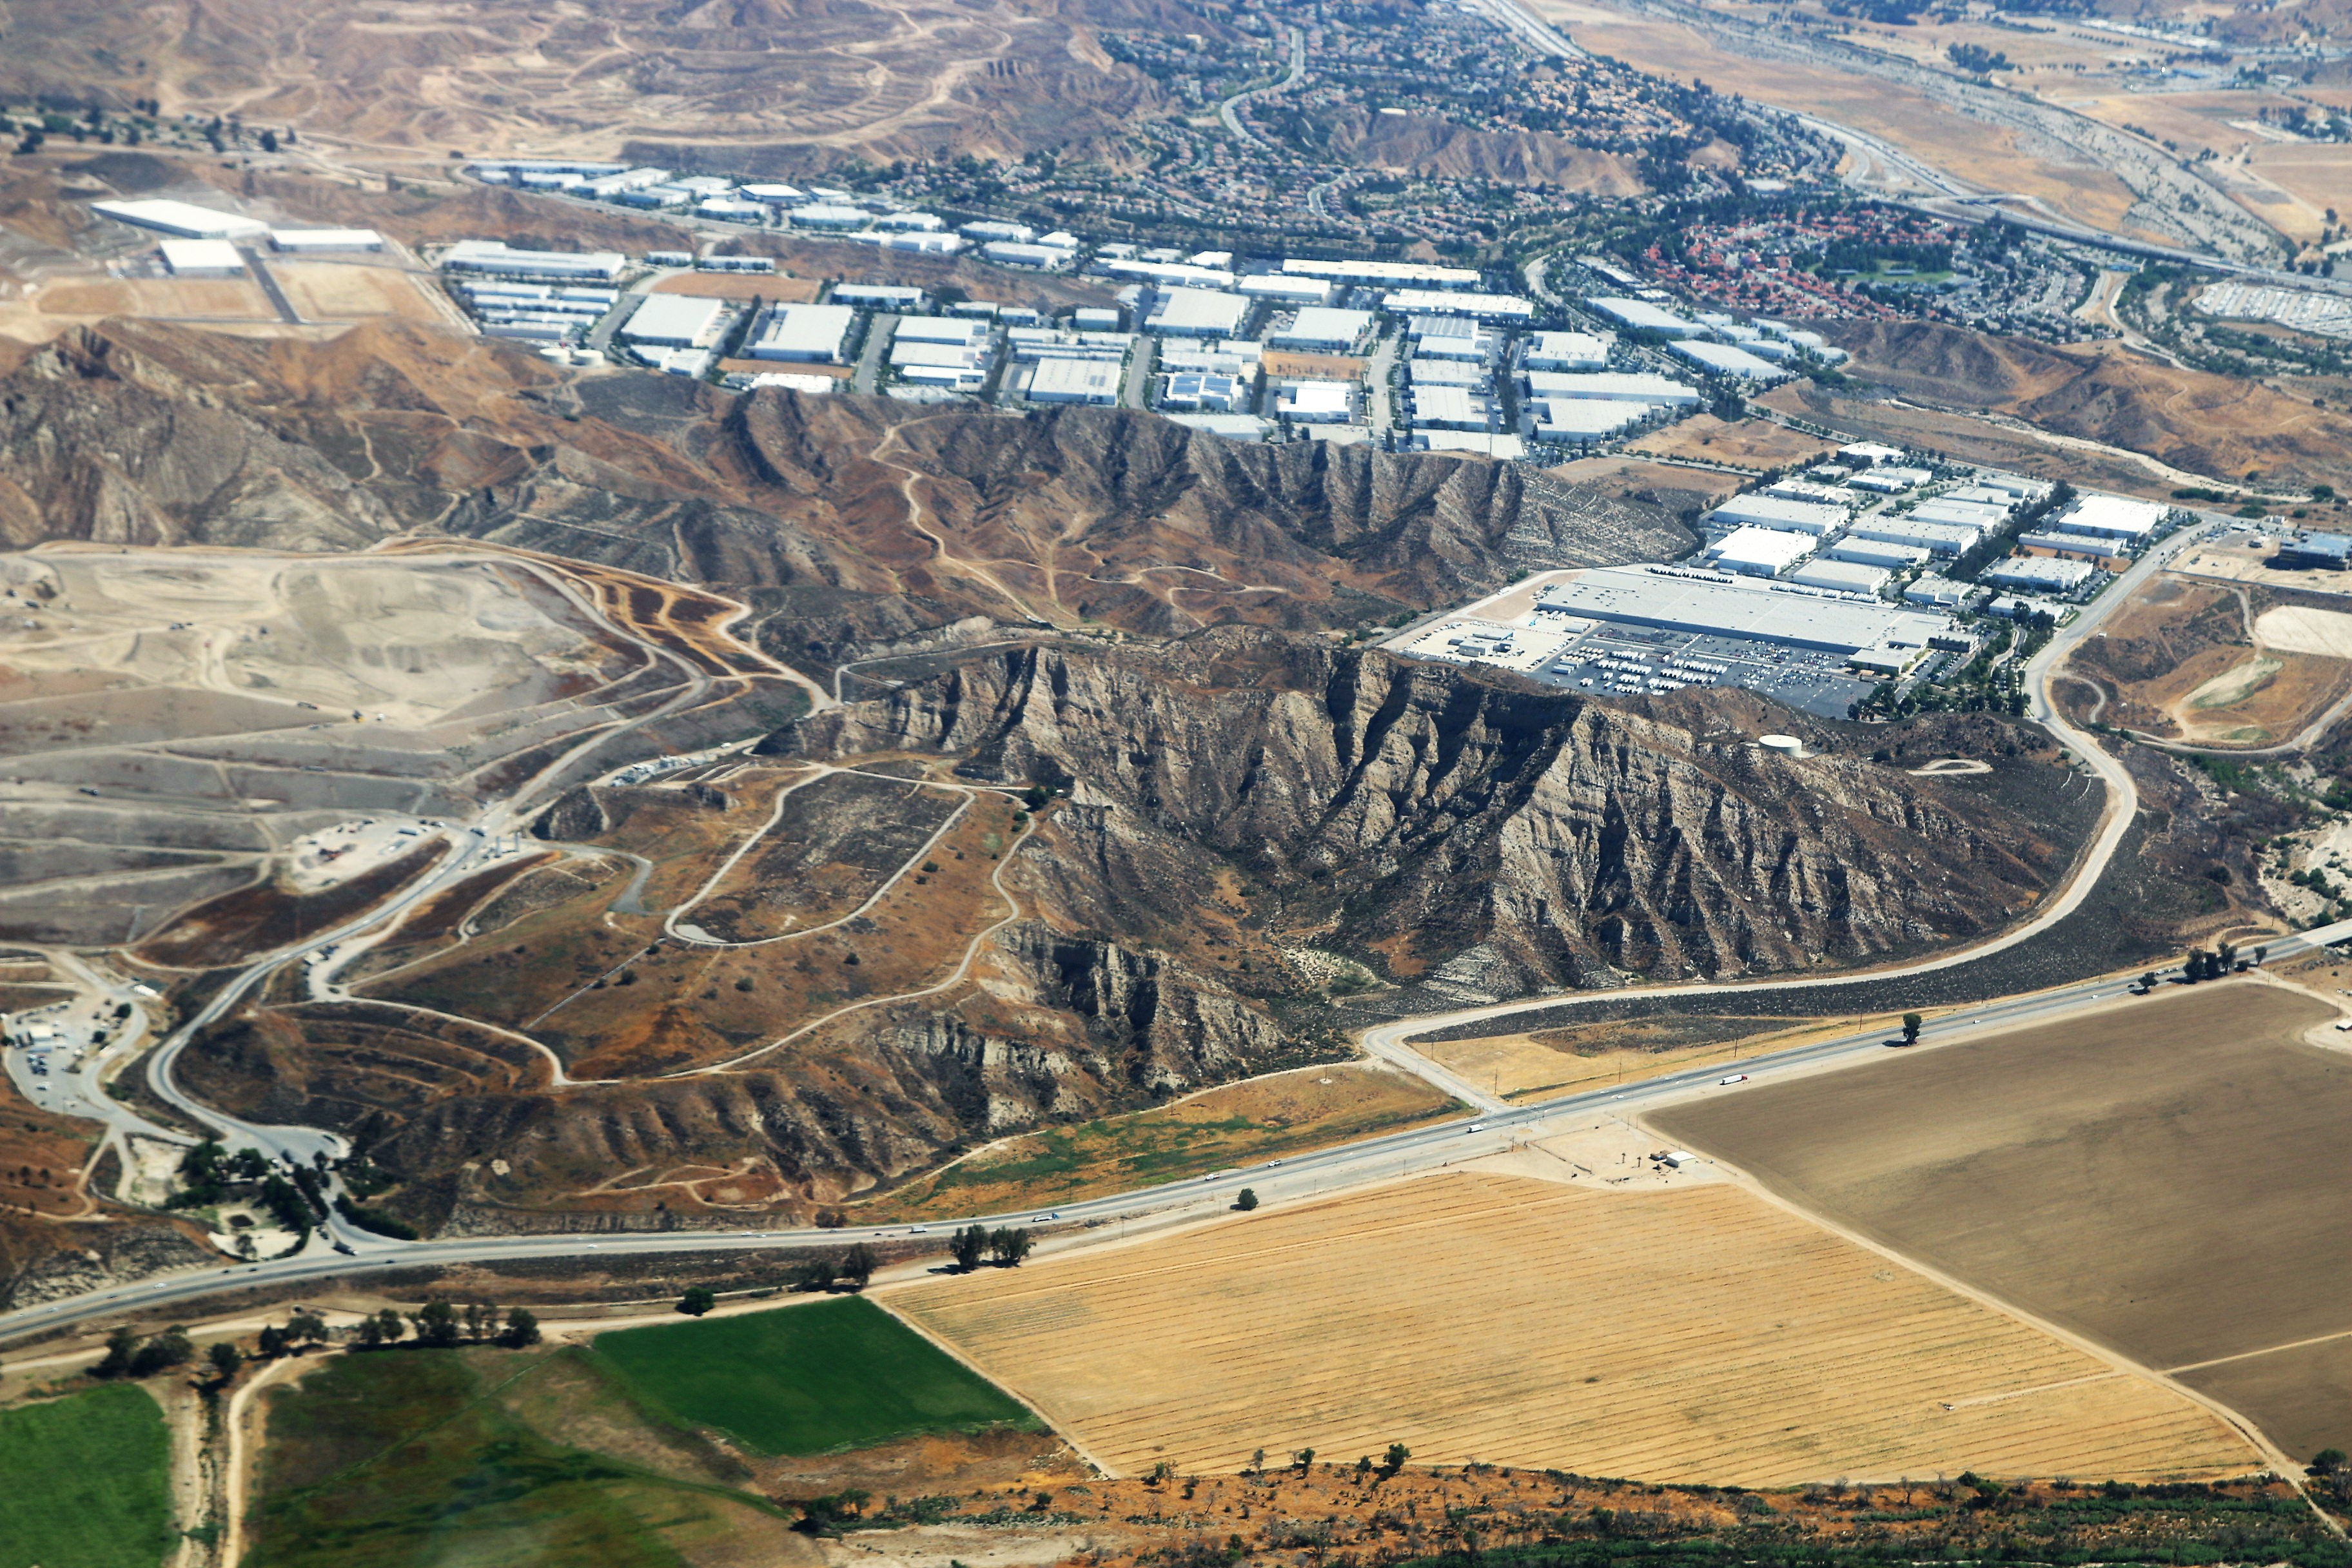 An Aerial View Of Undeveloped Newhall Ranch Property South Of Highway 126  In The Santa Clarita Valley On June 14, 2018. The Chiquita Canyon Landfill  Is On ...